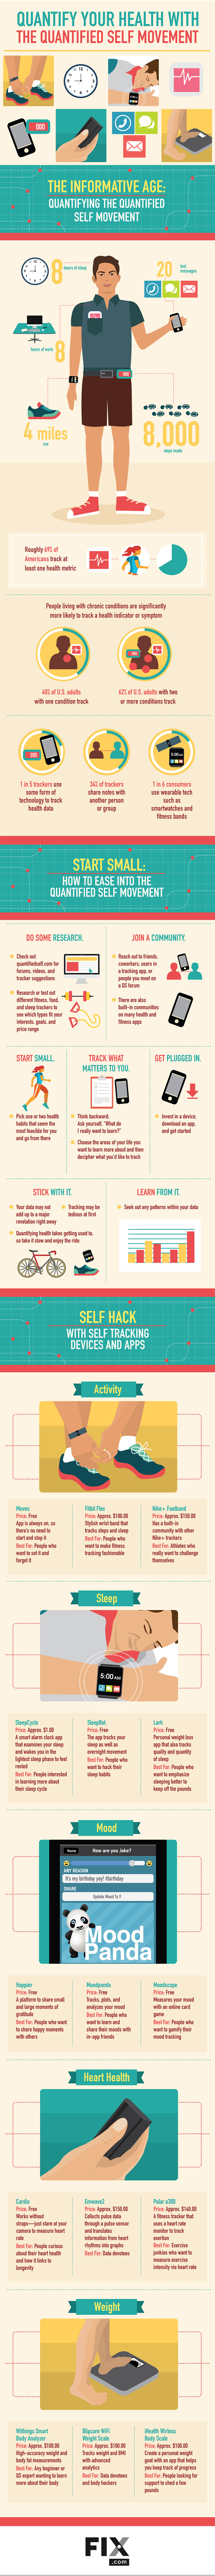 Quantify Your Health With The Quantified Self Movement